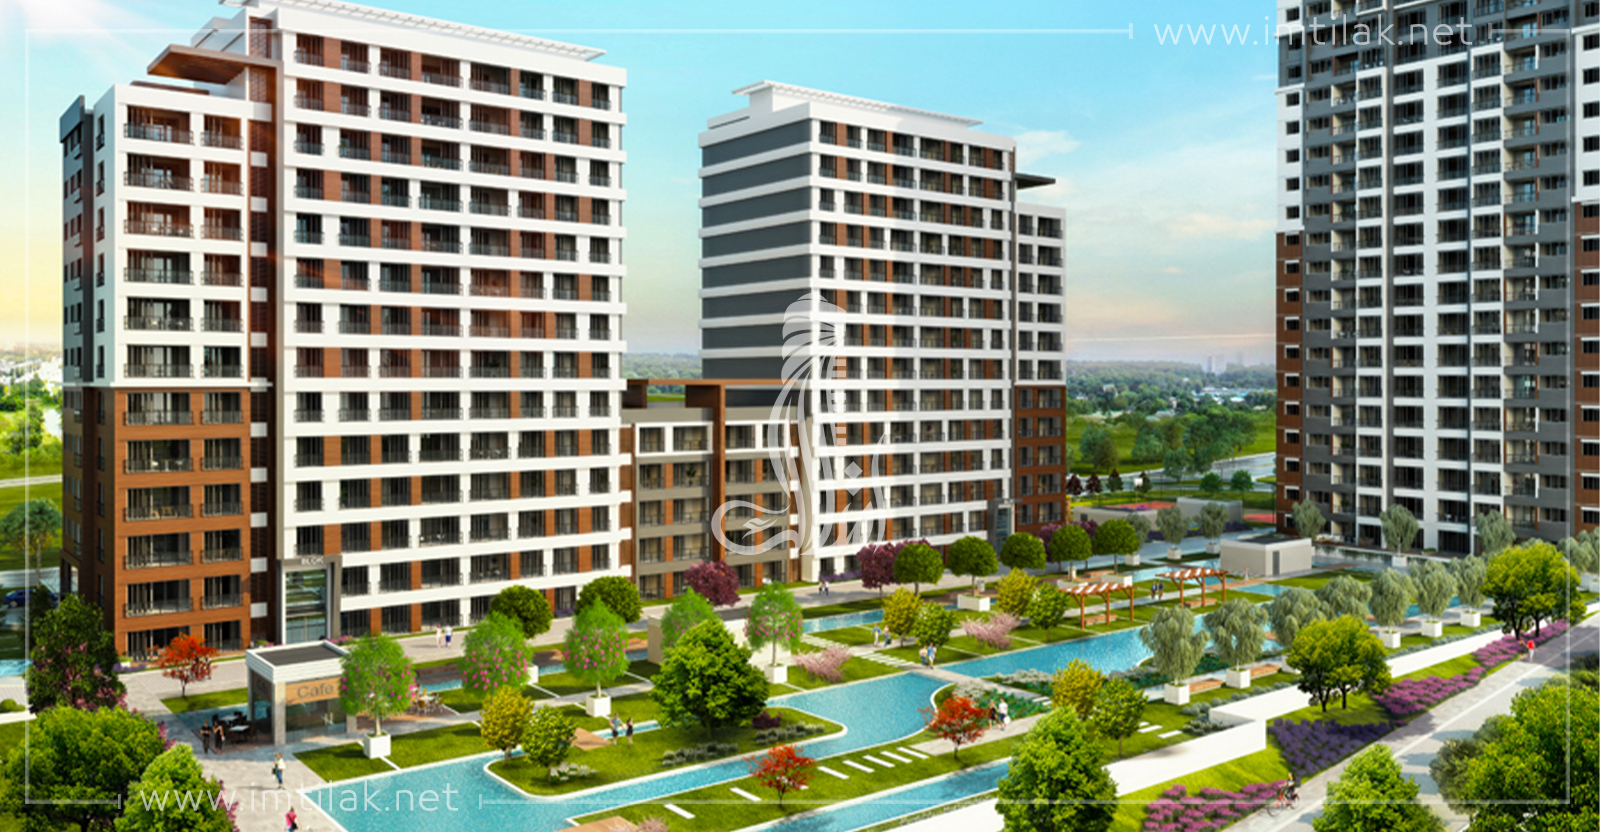 Garden City Project IMT - 234